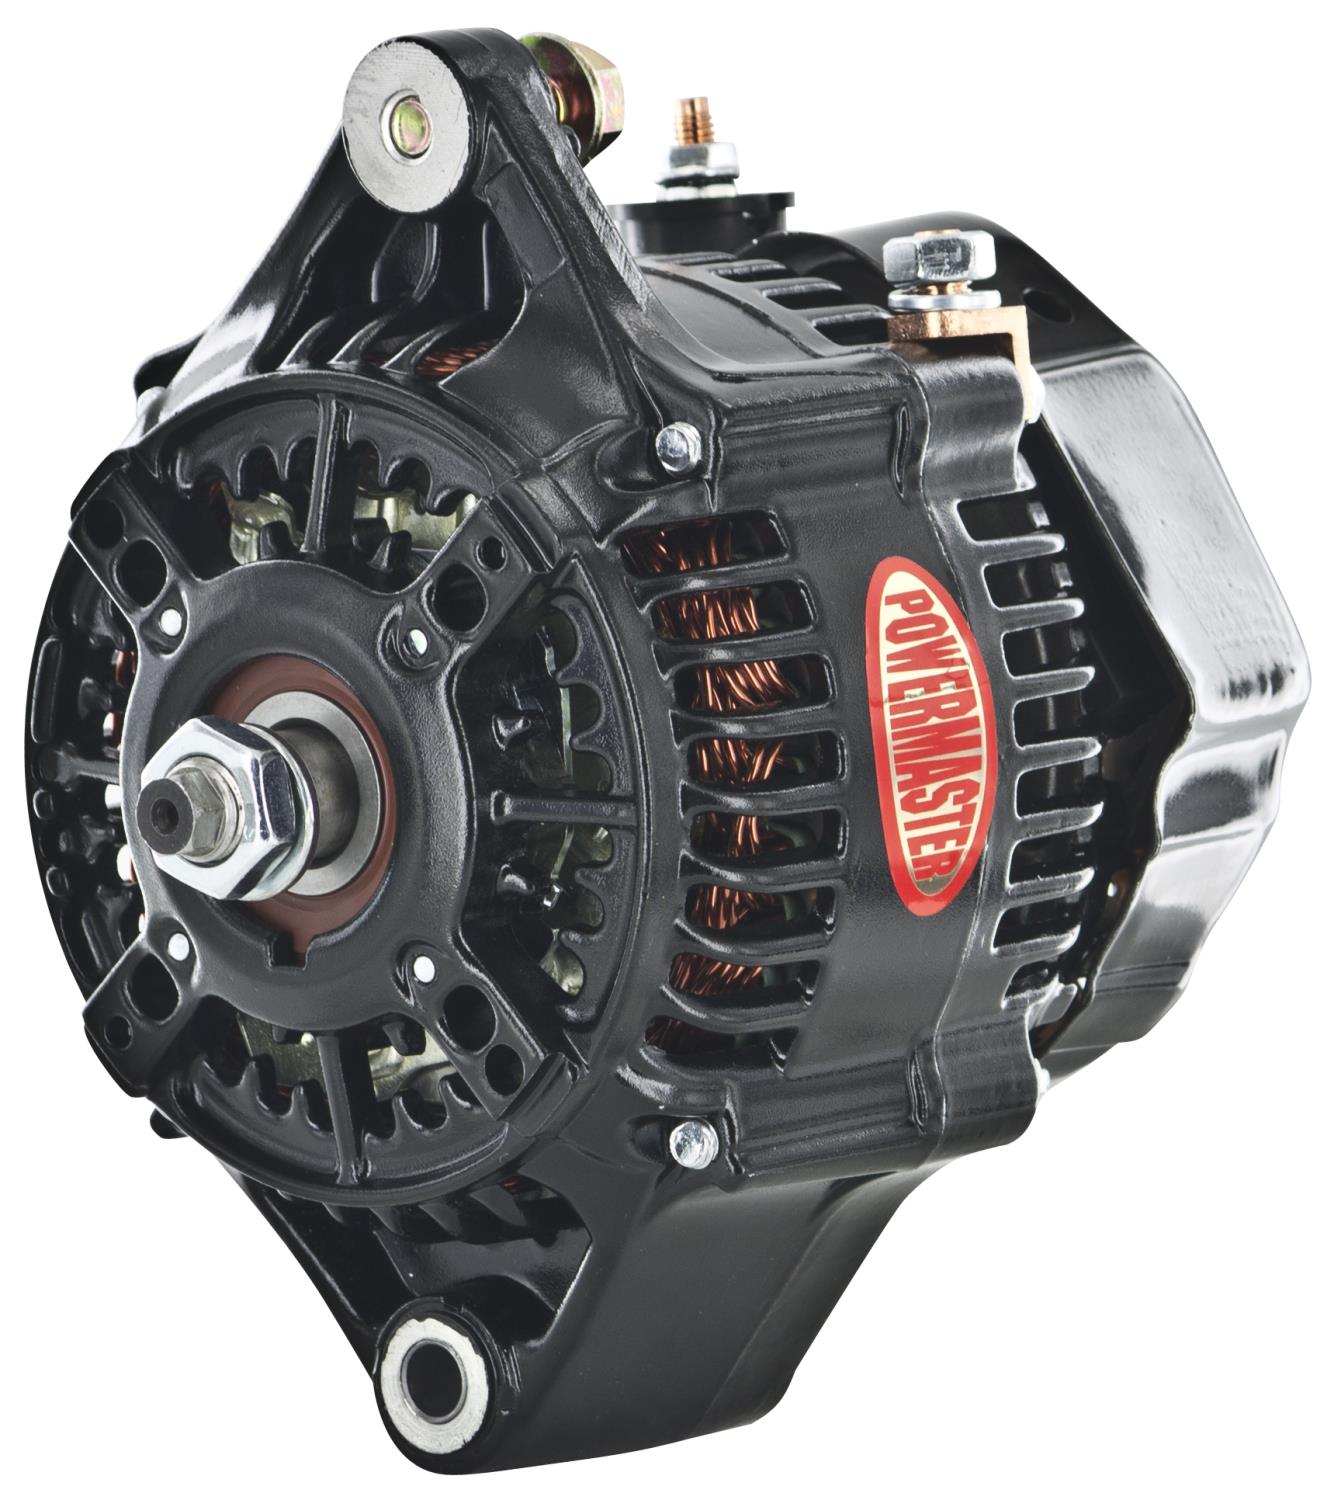 713 8142 powermaster 8142 denso style 118mm race alternator 150 amp 1 wire powermaster alternator wiring diagram at gsmportal.co